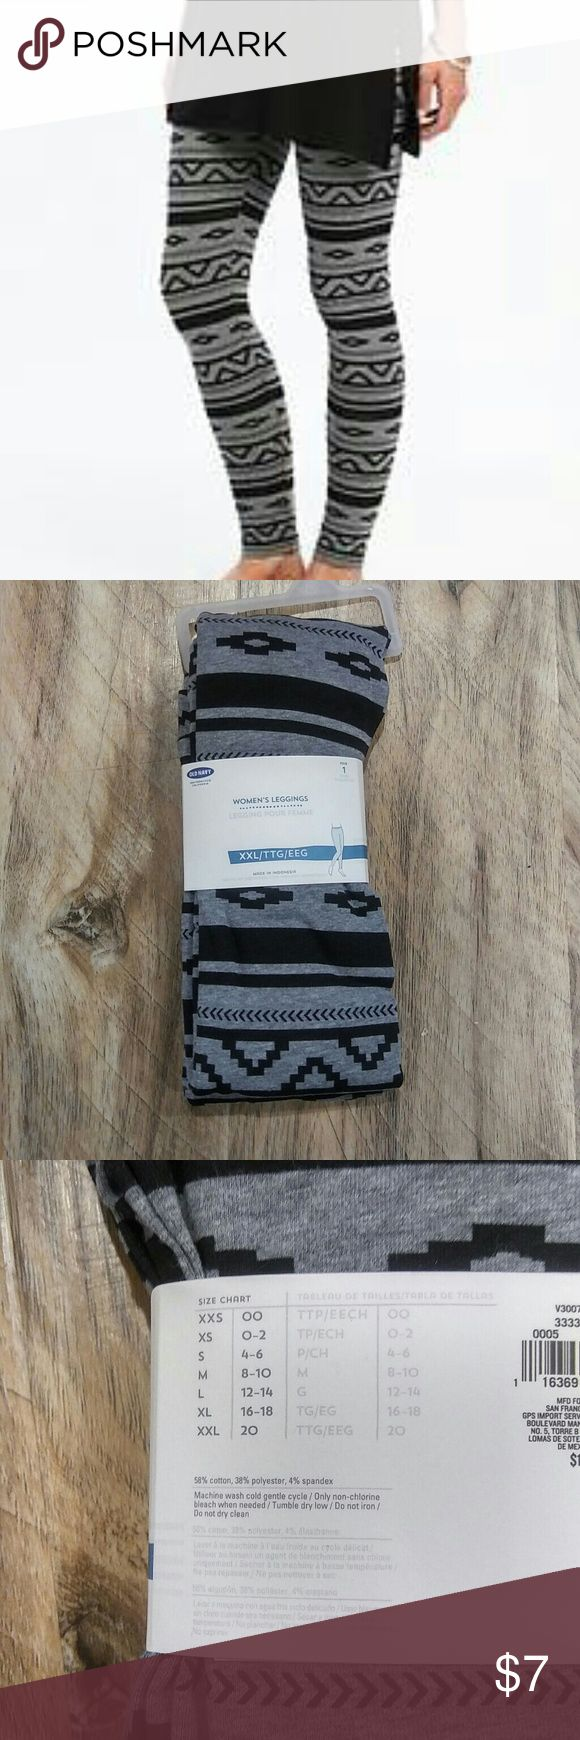 4 for $15 NEW Aztec print leggings Old navy Aztec print leggings in grey and black. Fits size 20🌟🌟🌟4 for $15 sale is for any 4 different qualifying listings! Old Navy Pants Leggings